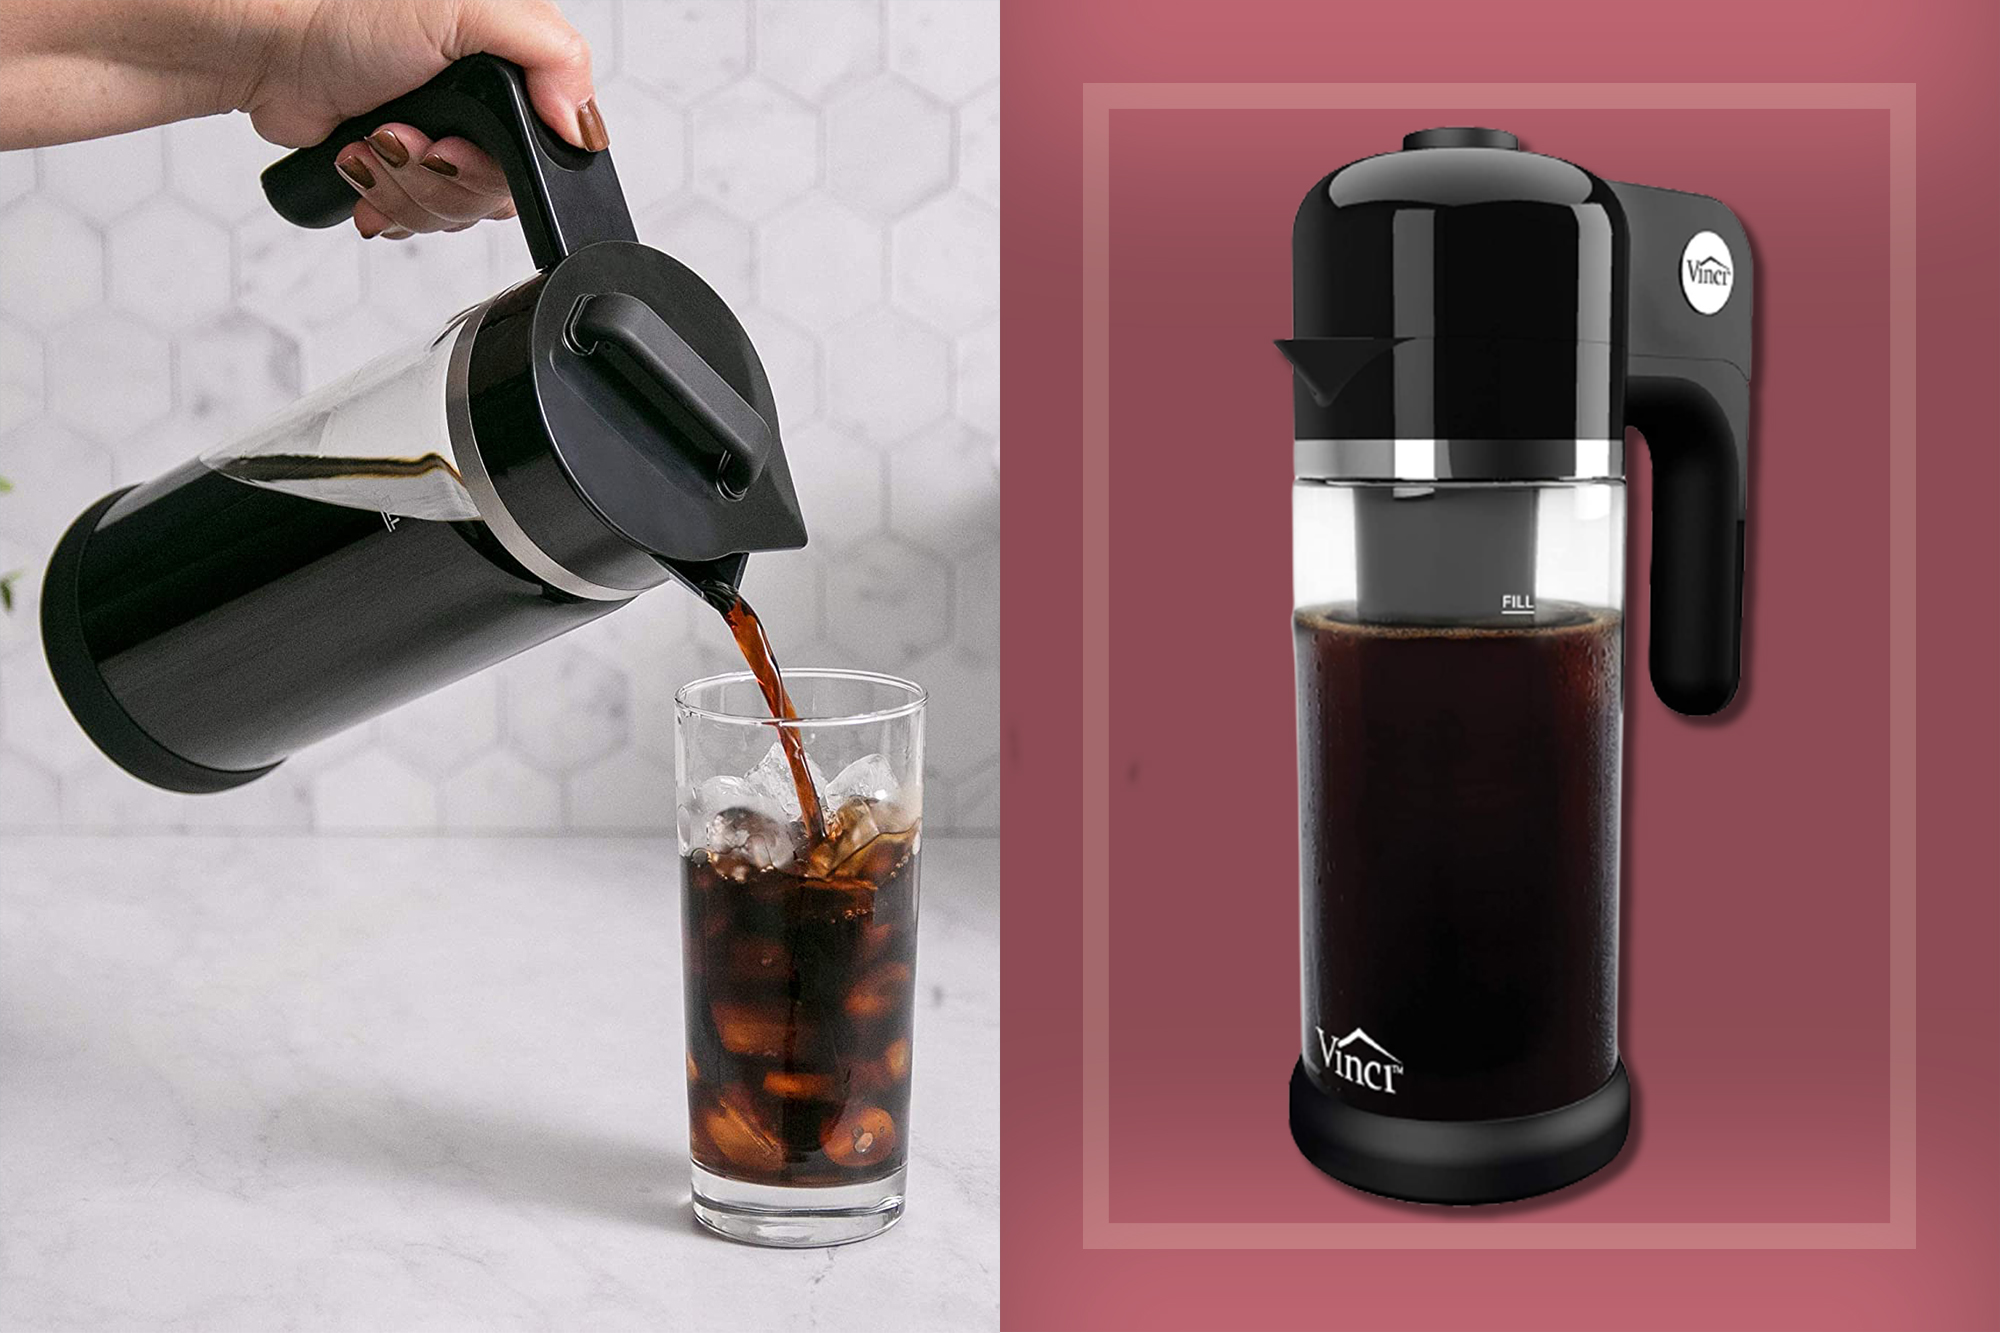 vinci cold brew maker